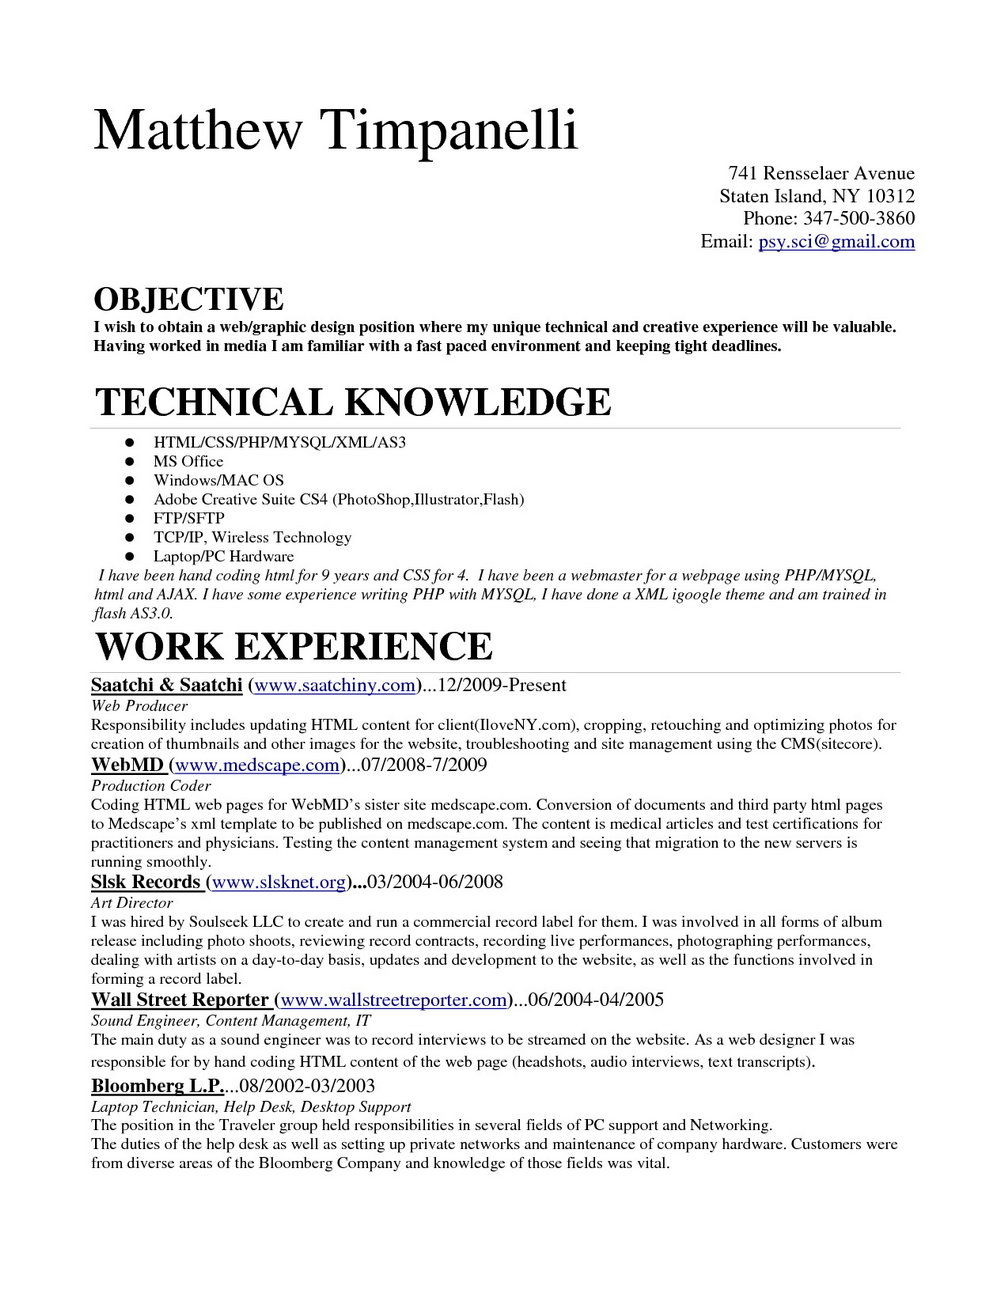 Resume For Medical Coder Fresher